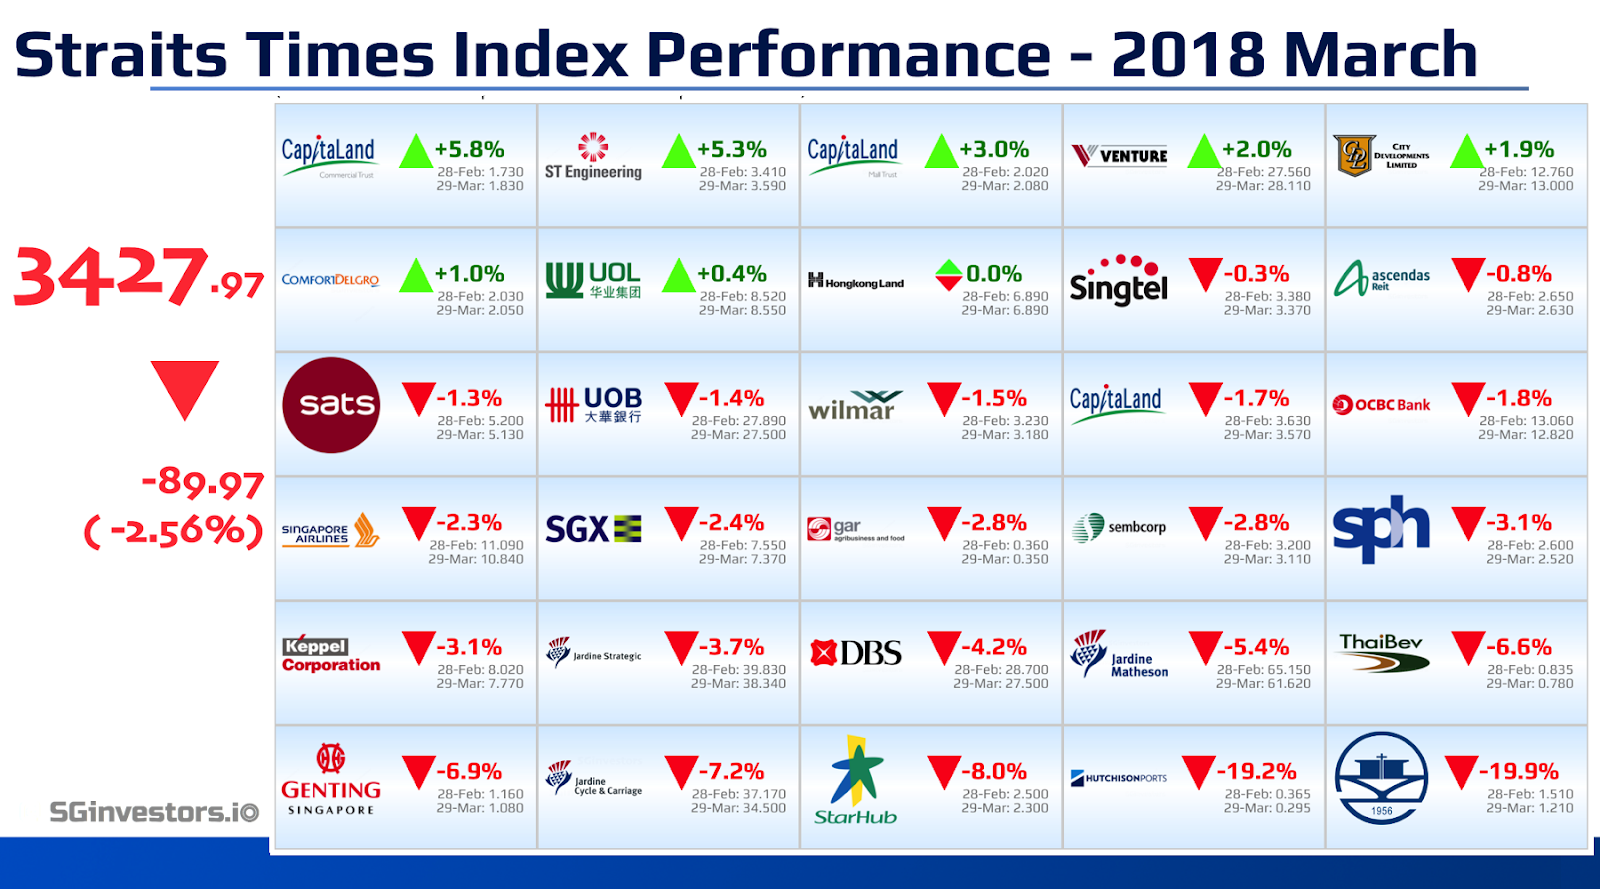 Performance of Straits Times Index (STI) Constituents in March 2018